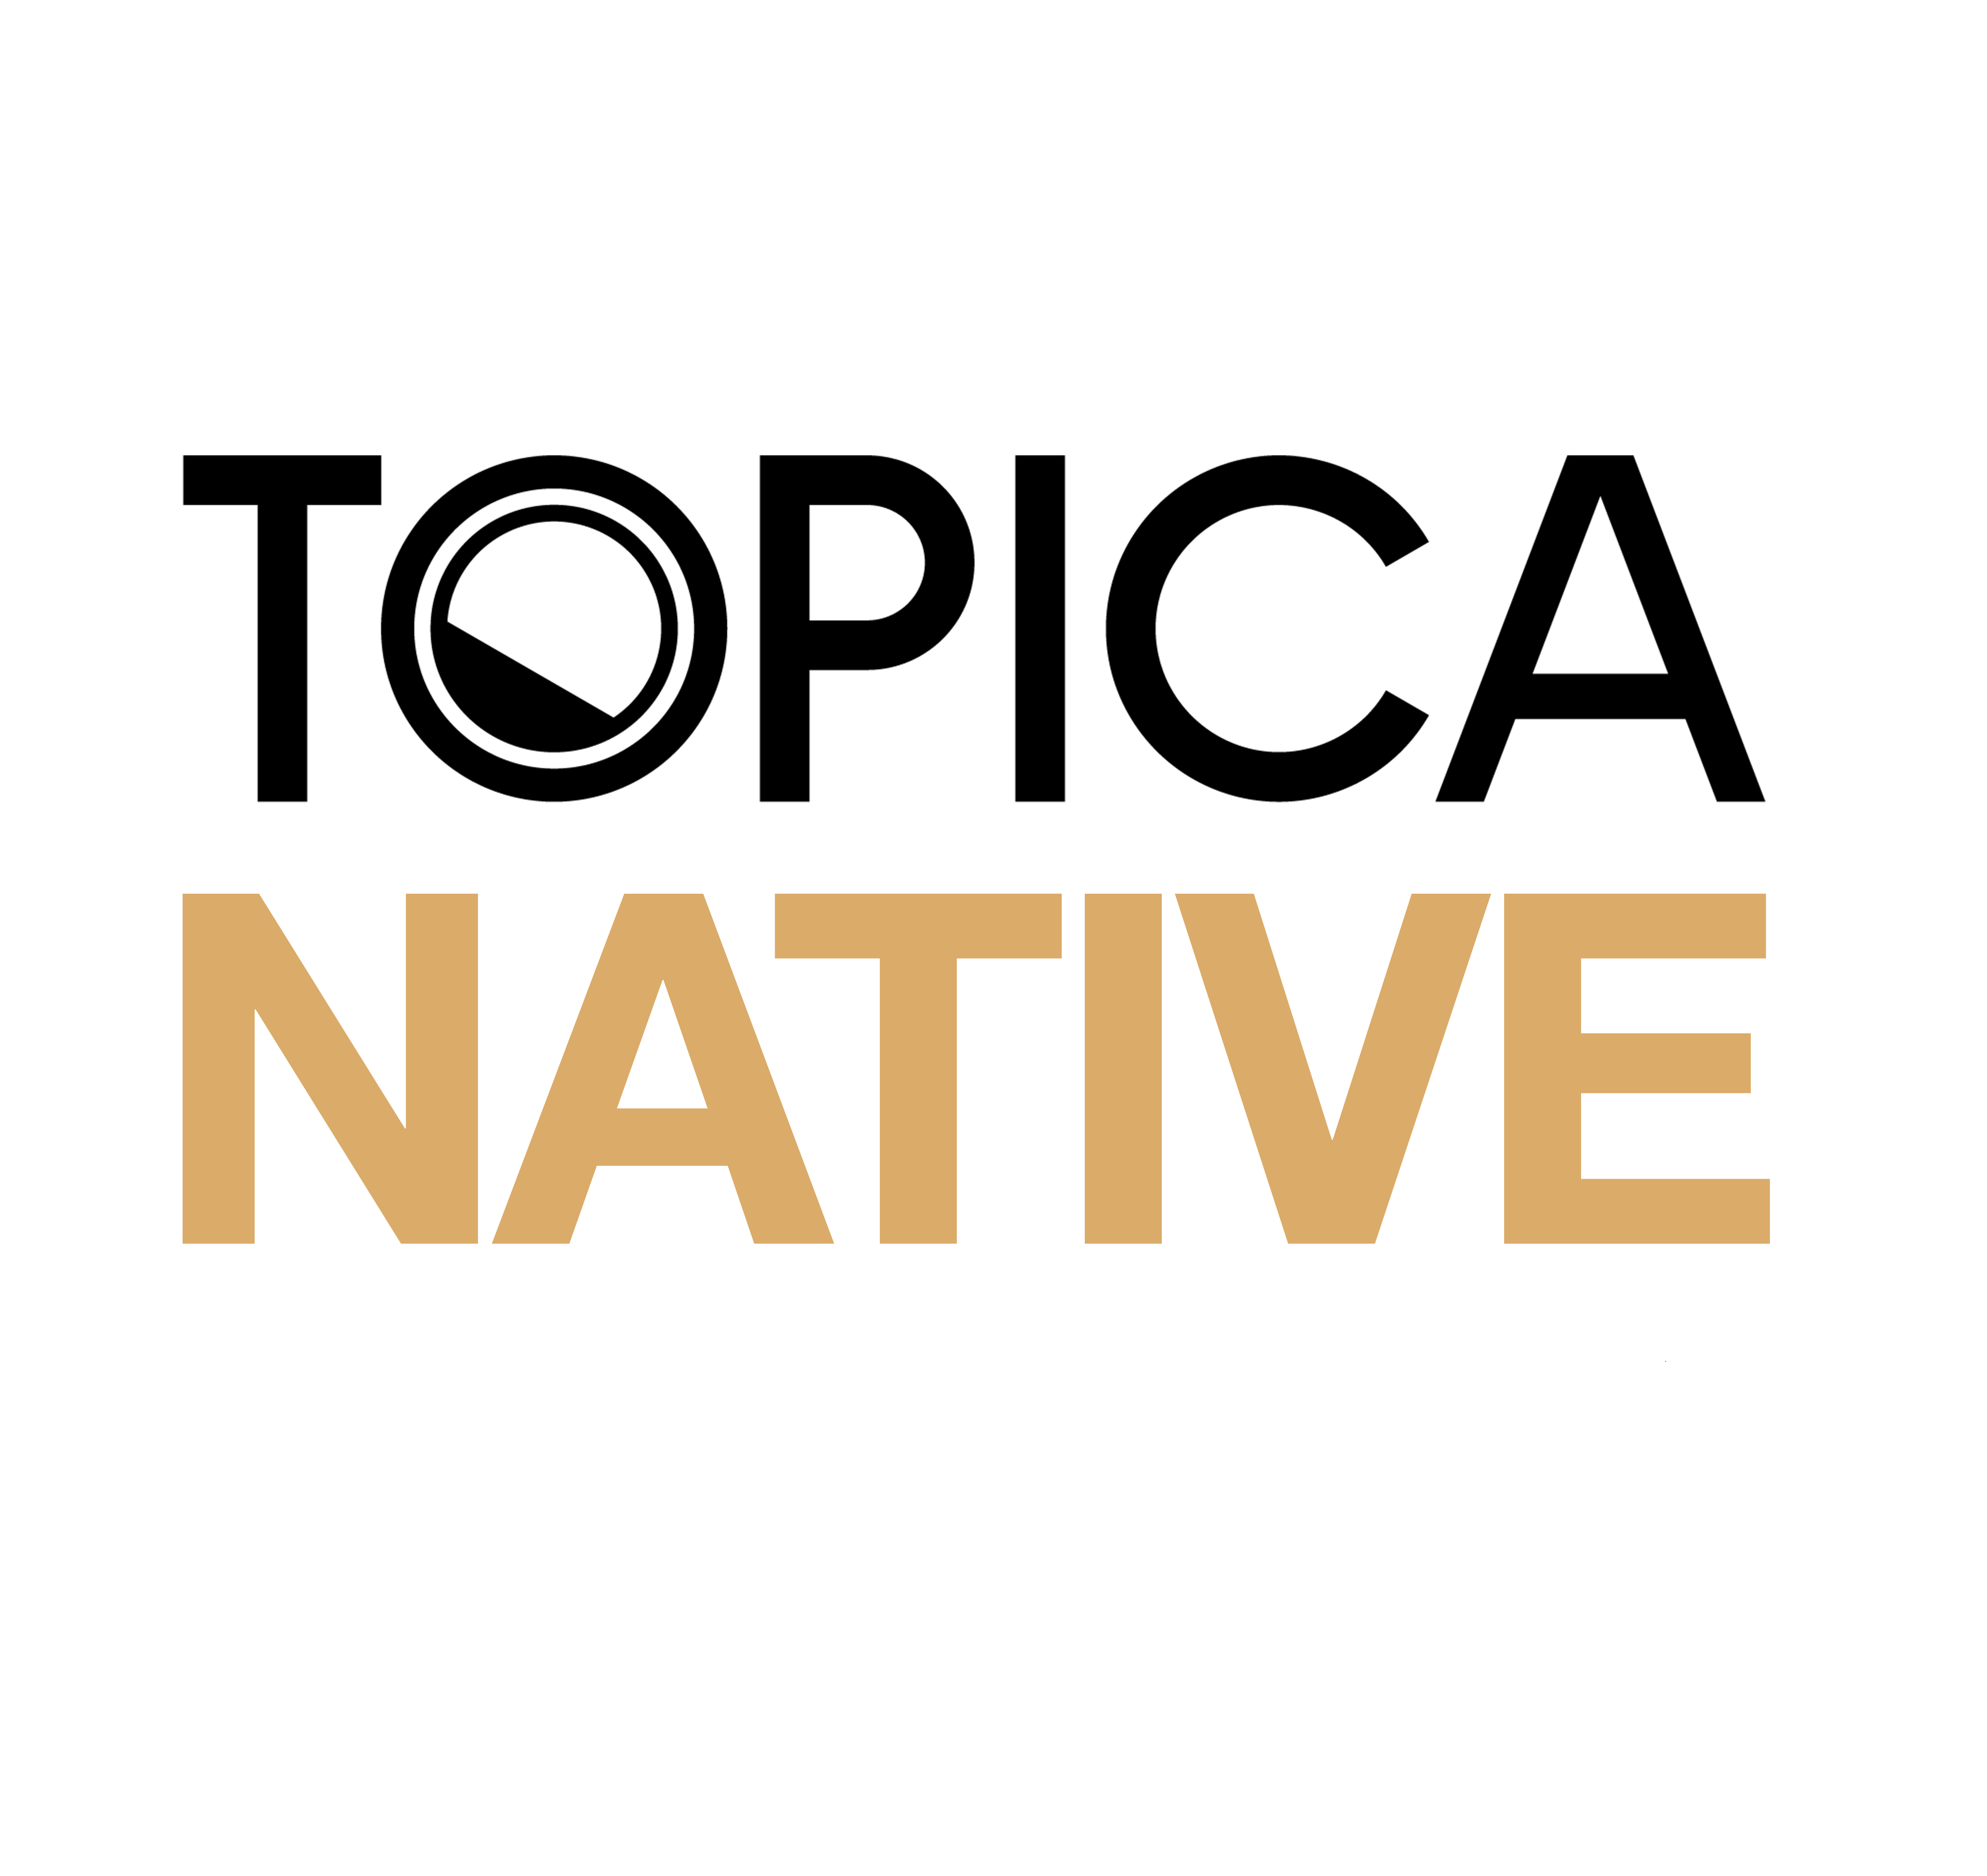 TOPICA Native